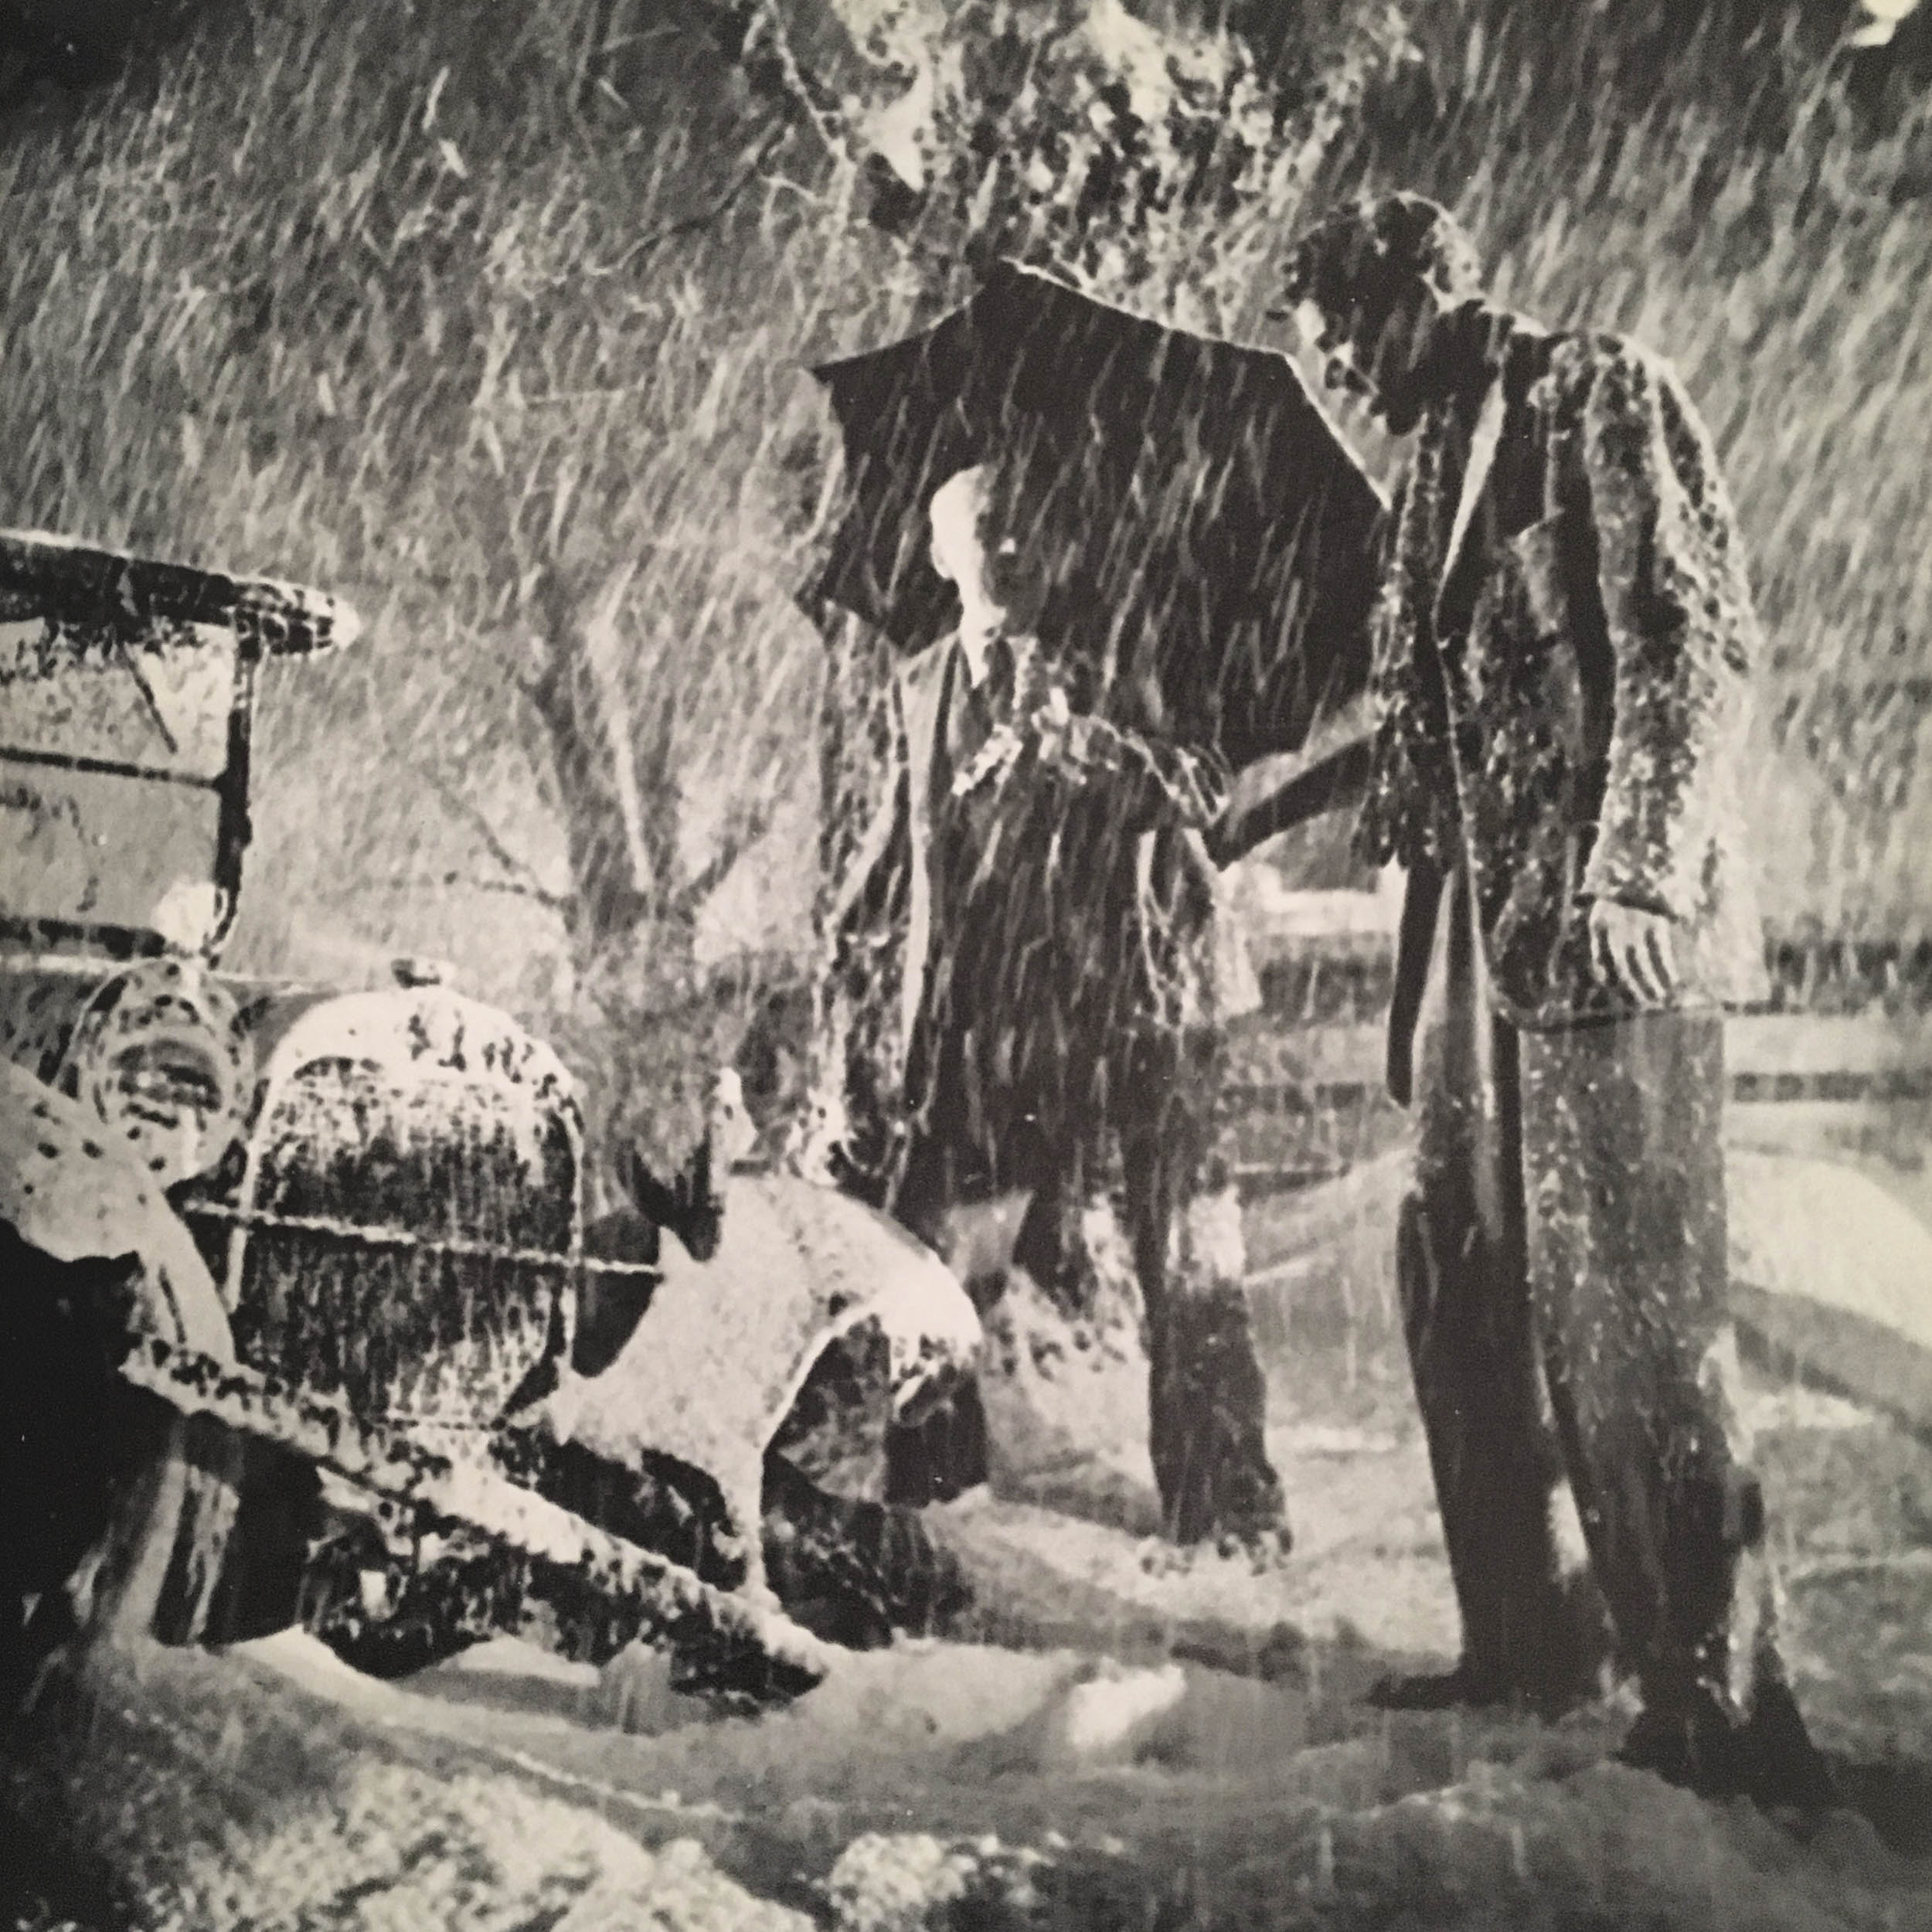 Jimmy Stewart meets the angry owner of the tree he crashed into in It's A Wonderful Life.